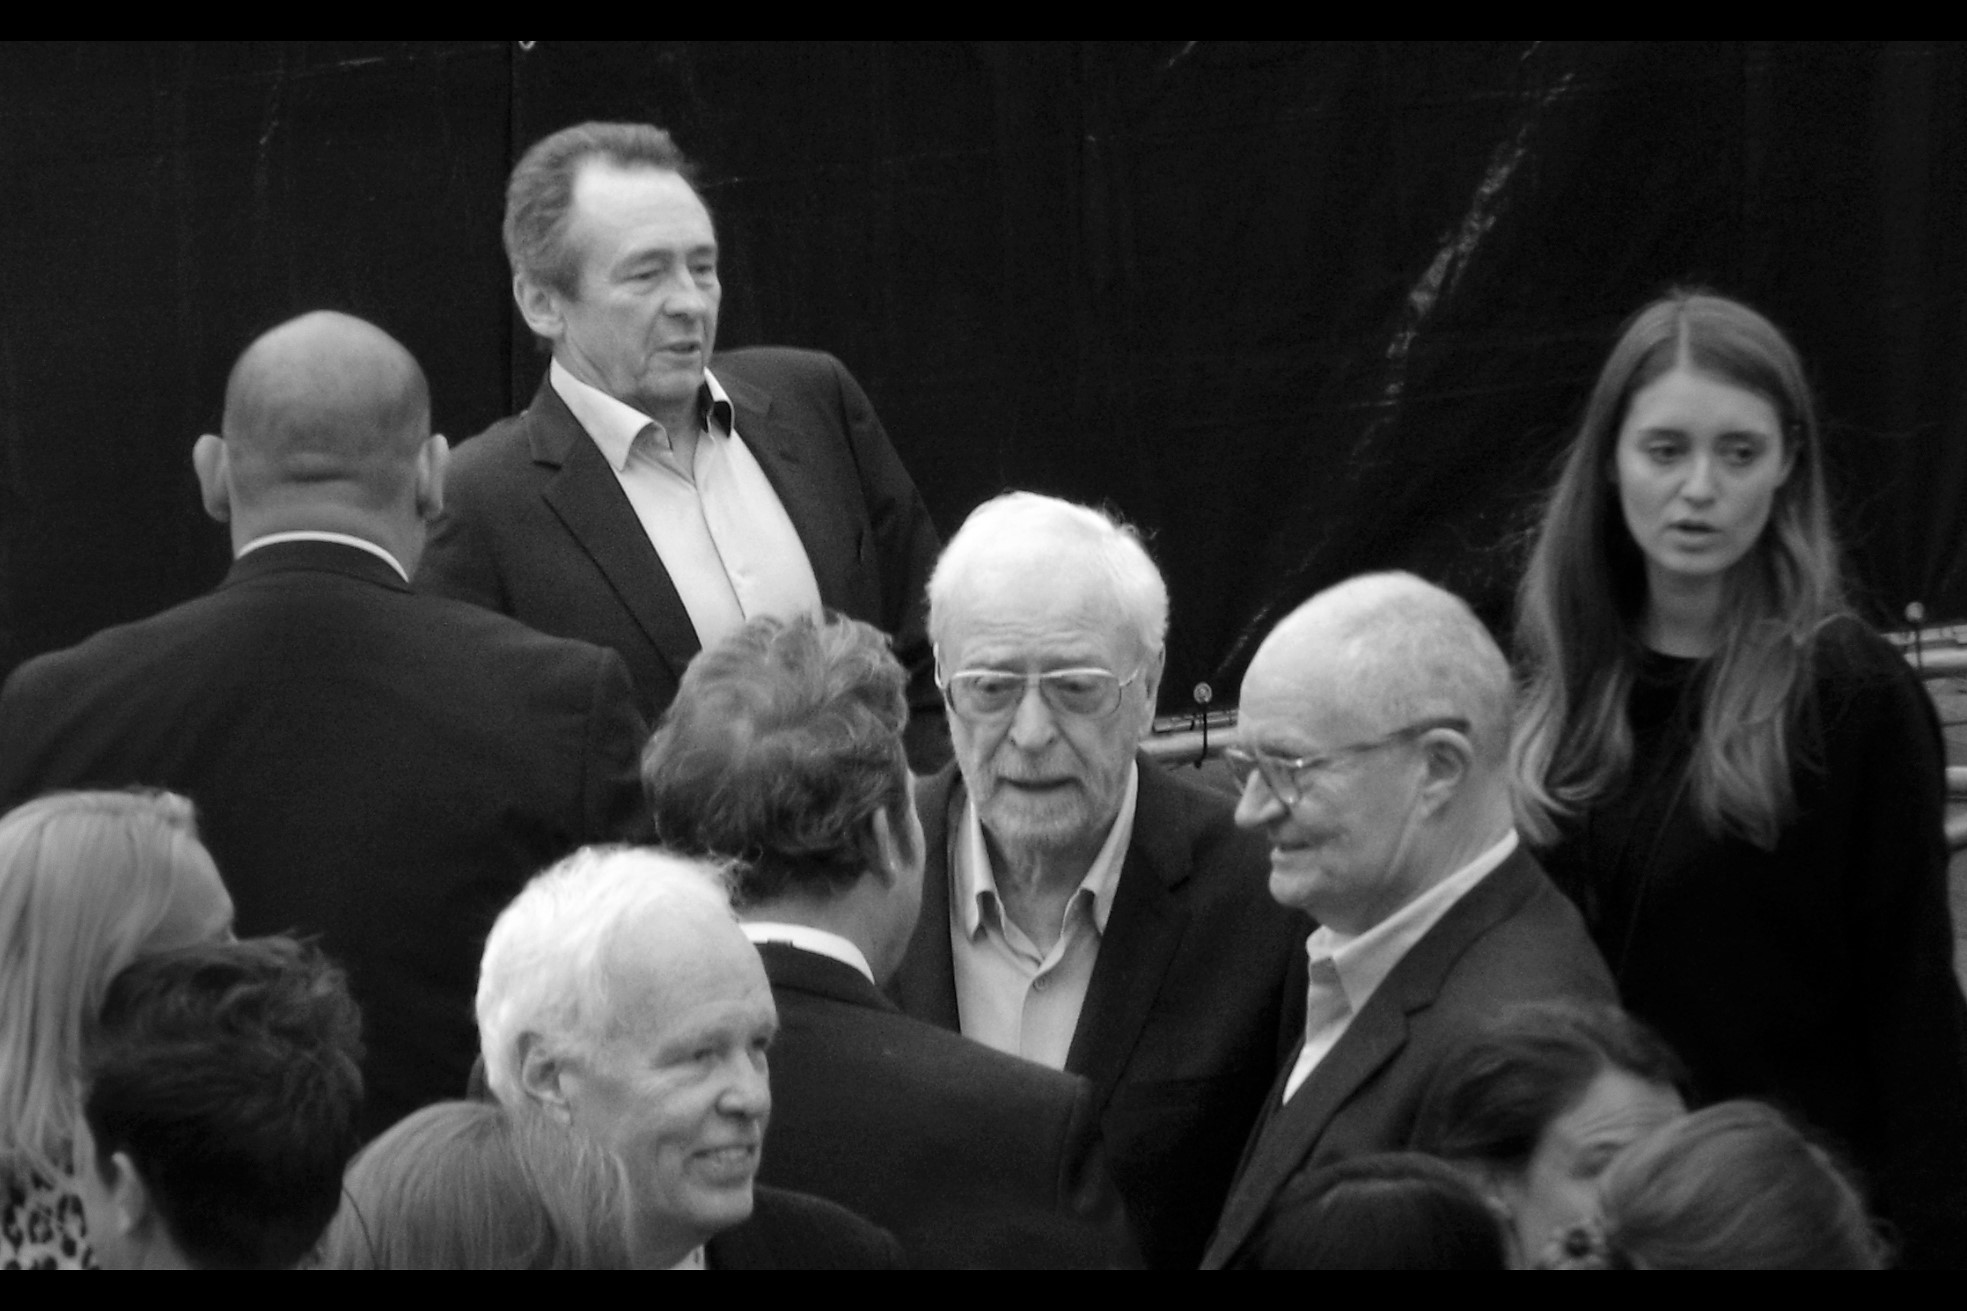 """""""I asked about putting in a musical number but they felt it didn't fit the theme they were going for…."""" """"But they' had one in The Last Jedi!"""" """"Well this is grittier than that movie….""""  Jim Broadbent (at right) played the all-singing all-dancing Harold Ziedler in Moulin Rouge all those many years ago, as well as Professor Slughorn across more than one Harry Potter movie."""